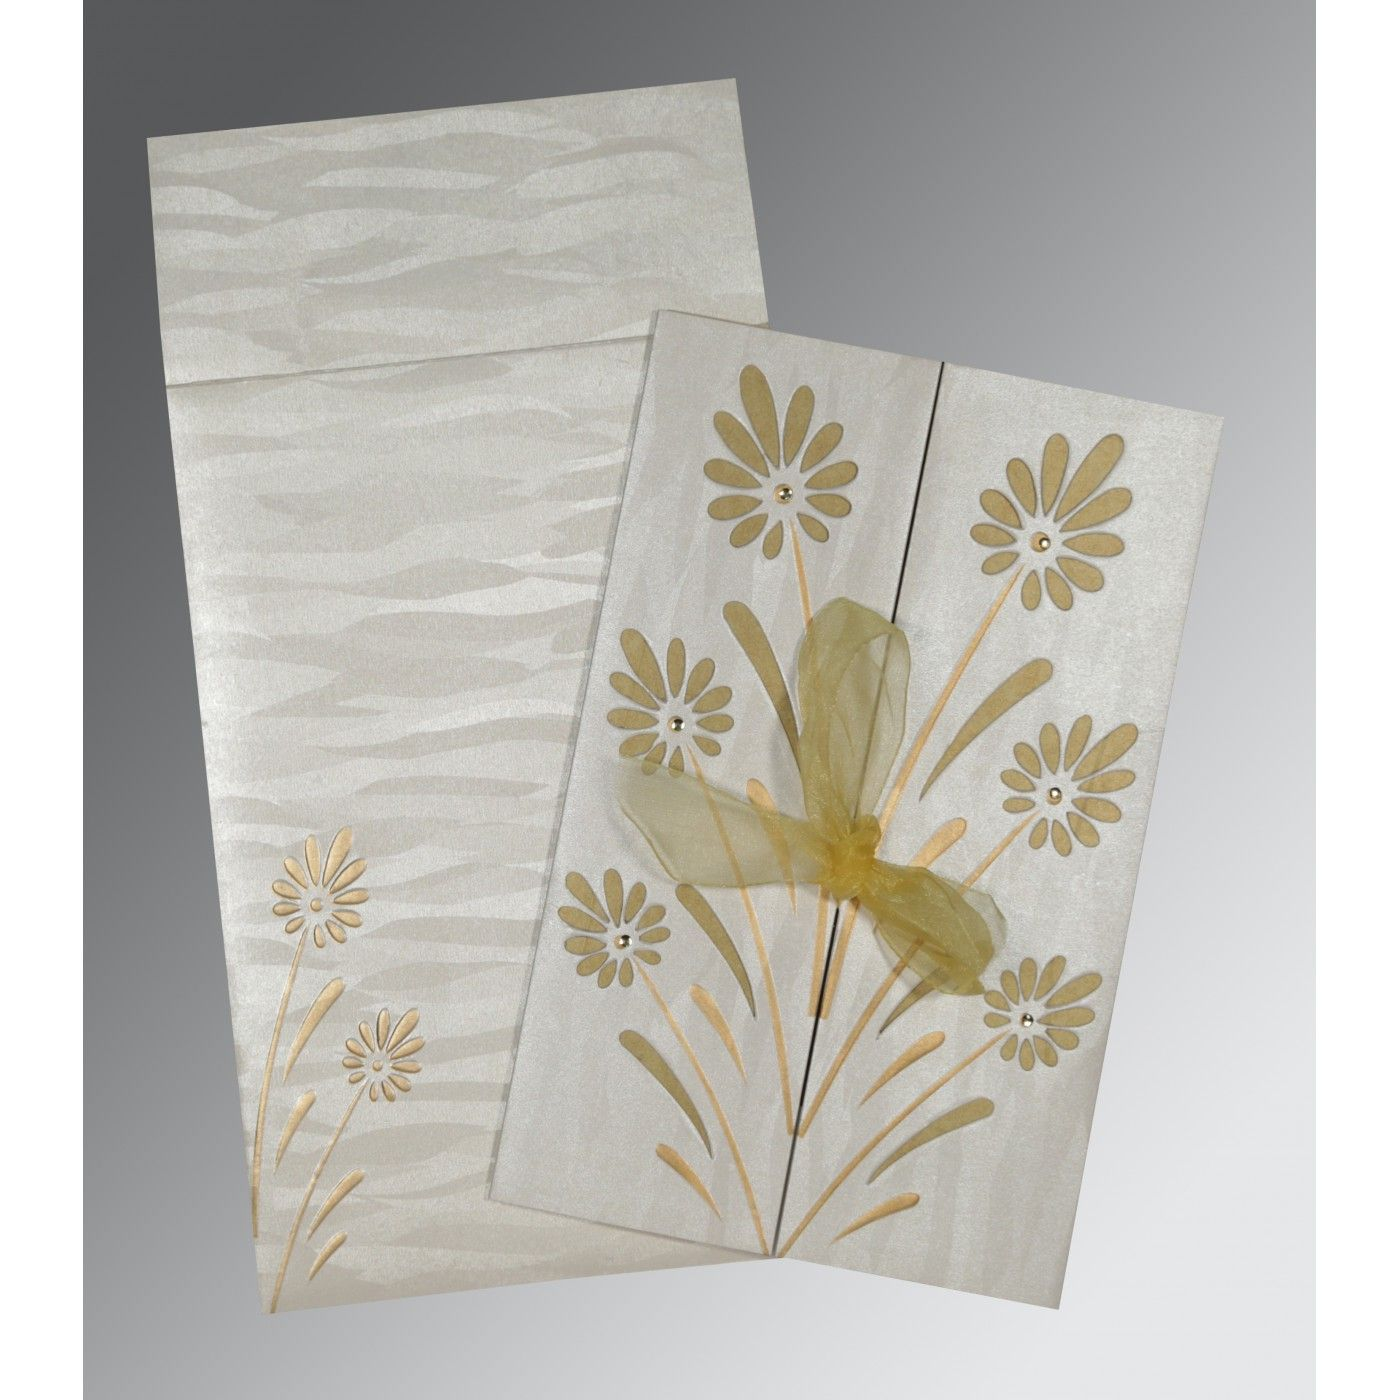 METALLIC SILVER SHIMMERY FLORAL THEMED - EMBOSSED WEDDING CARD : CD-1372 - IndianWeddingCards